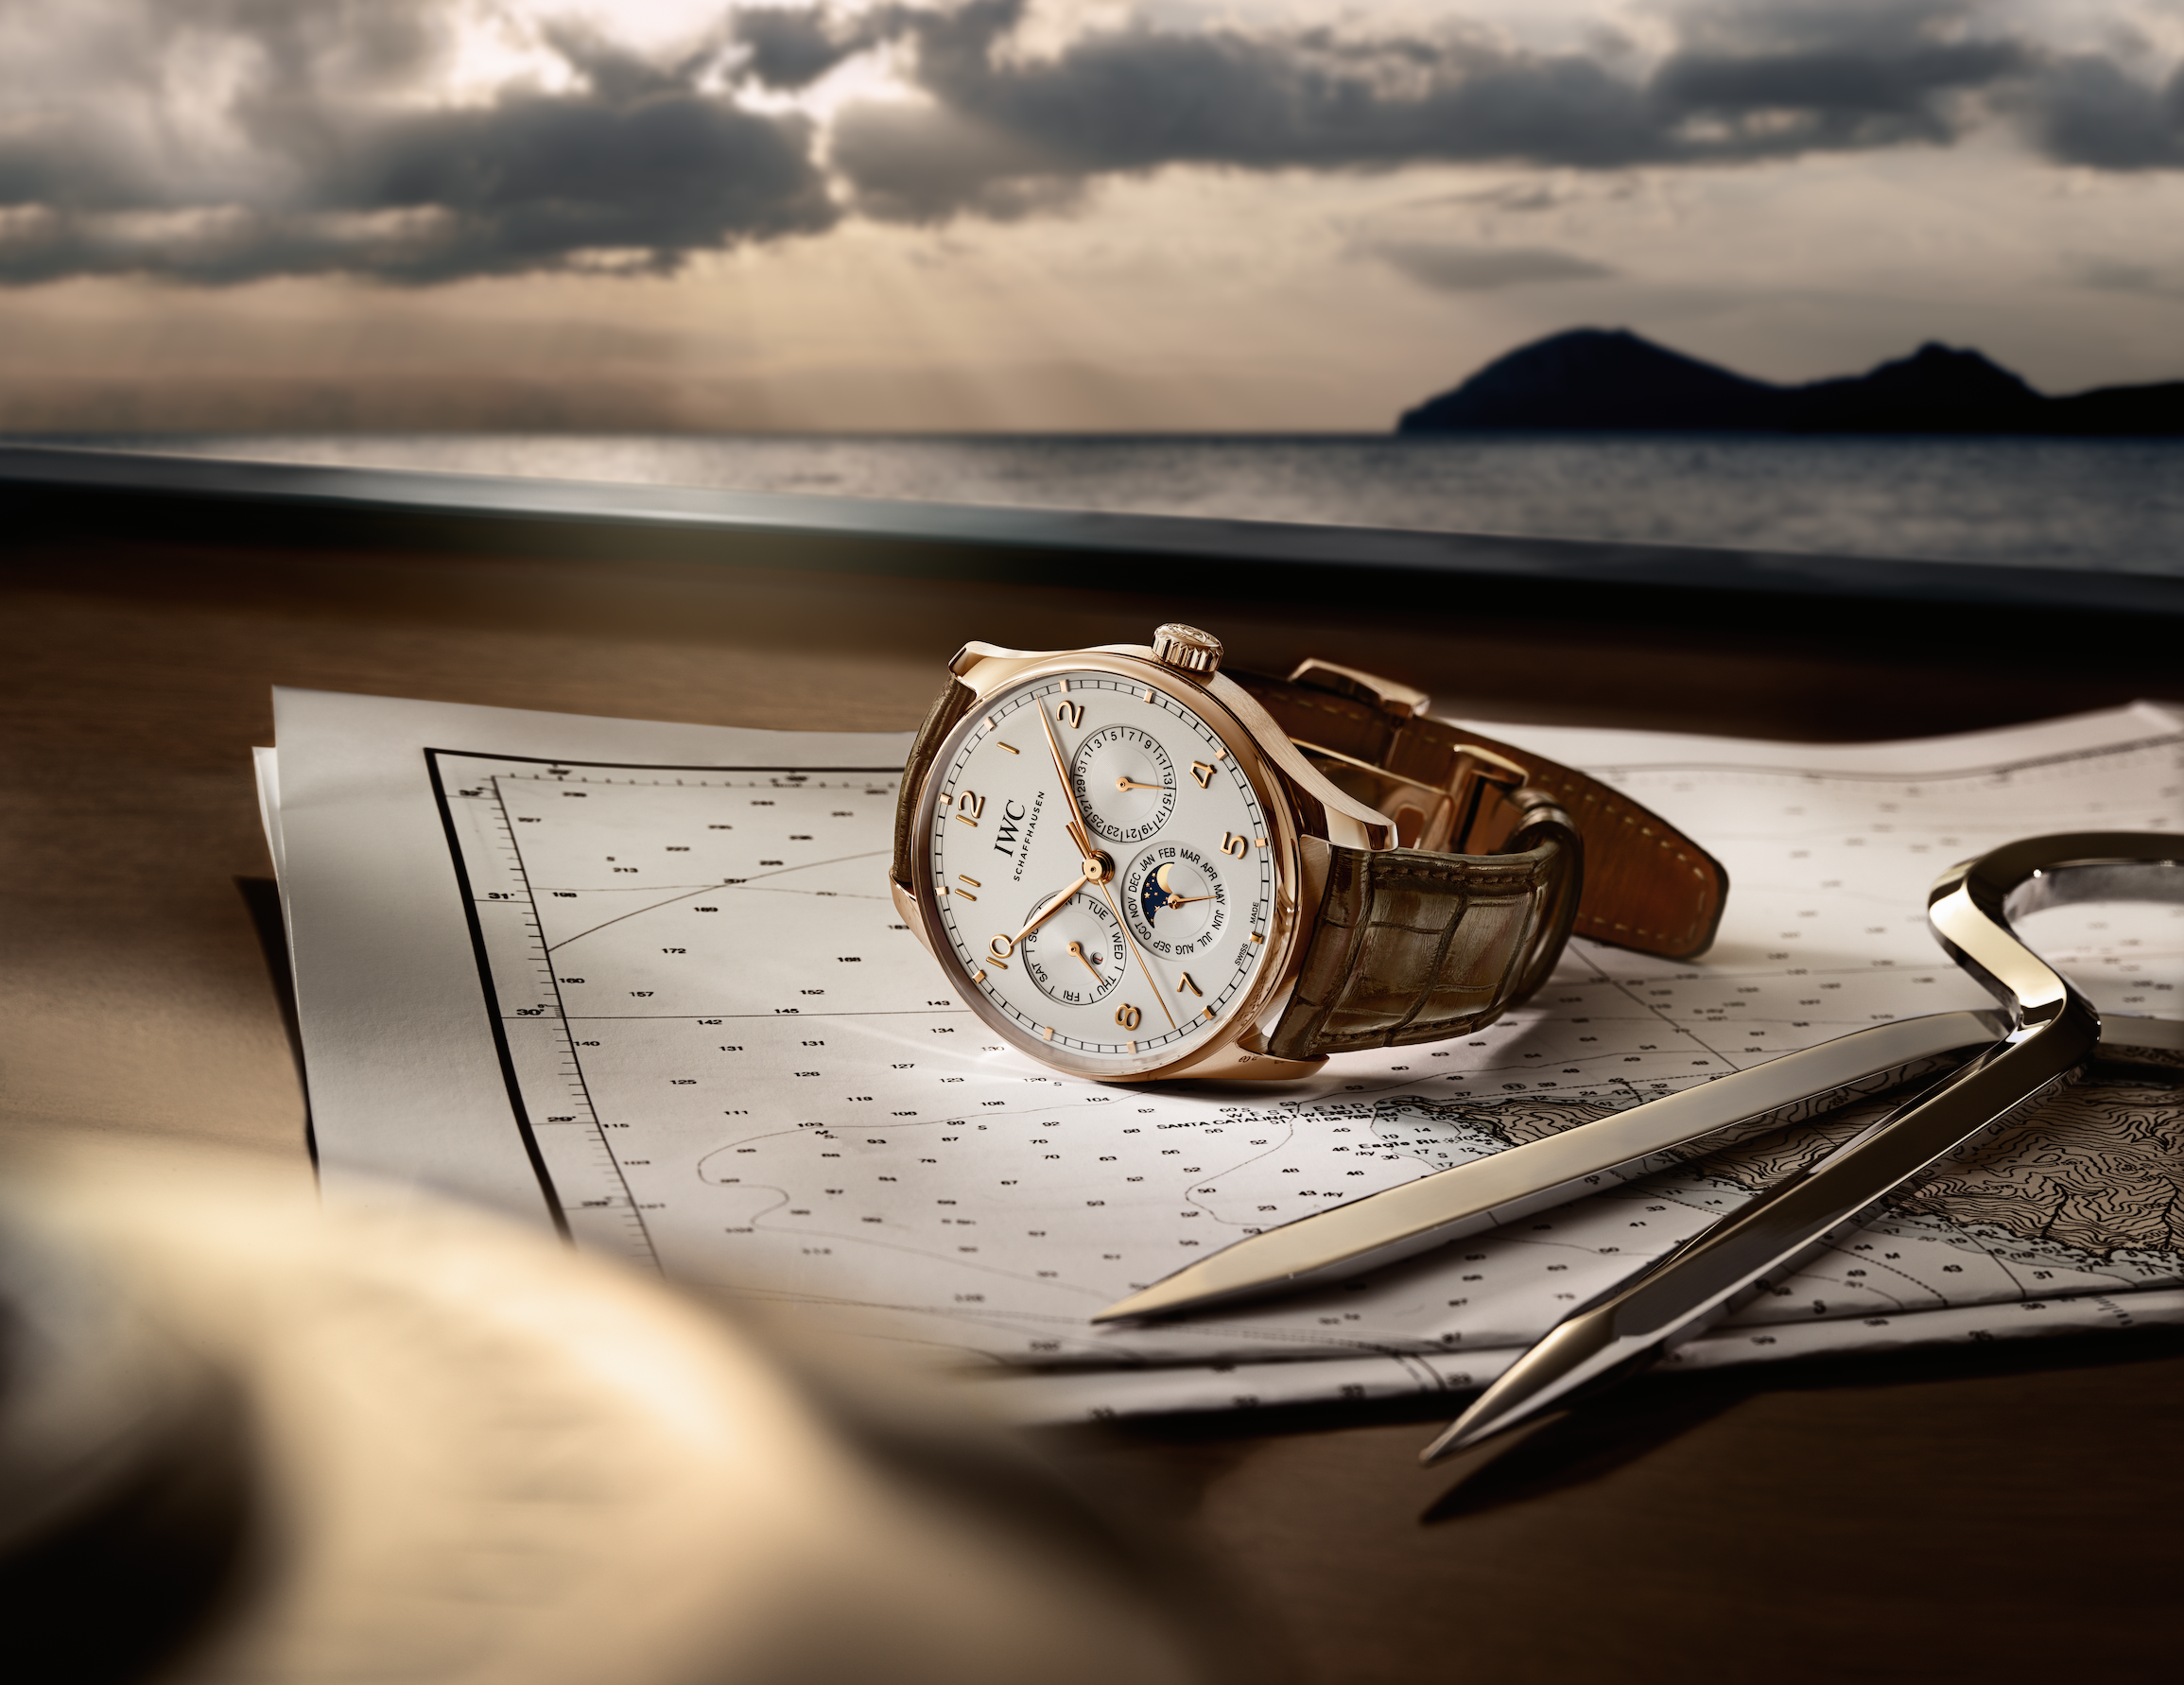 IWC's 2020 collection is a vulgar display of design purity and power